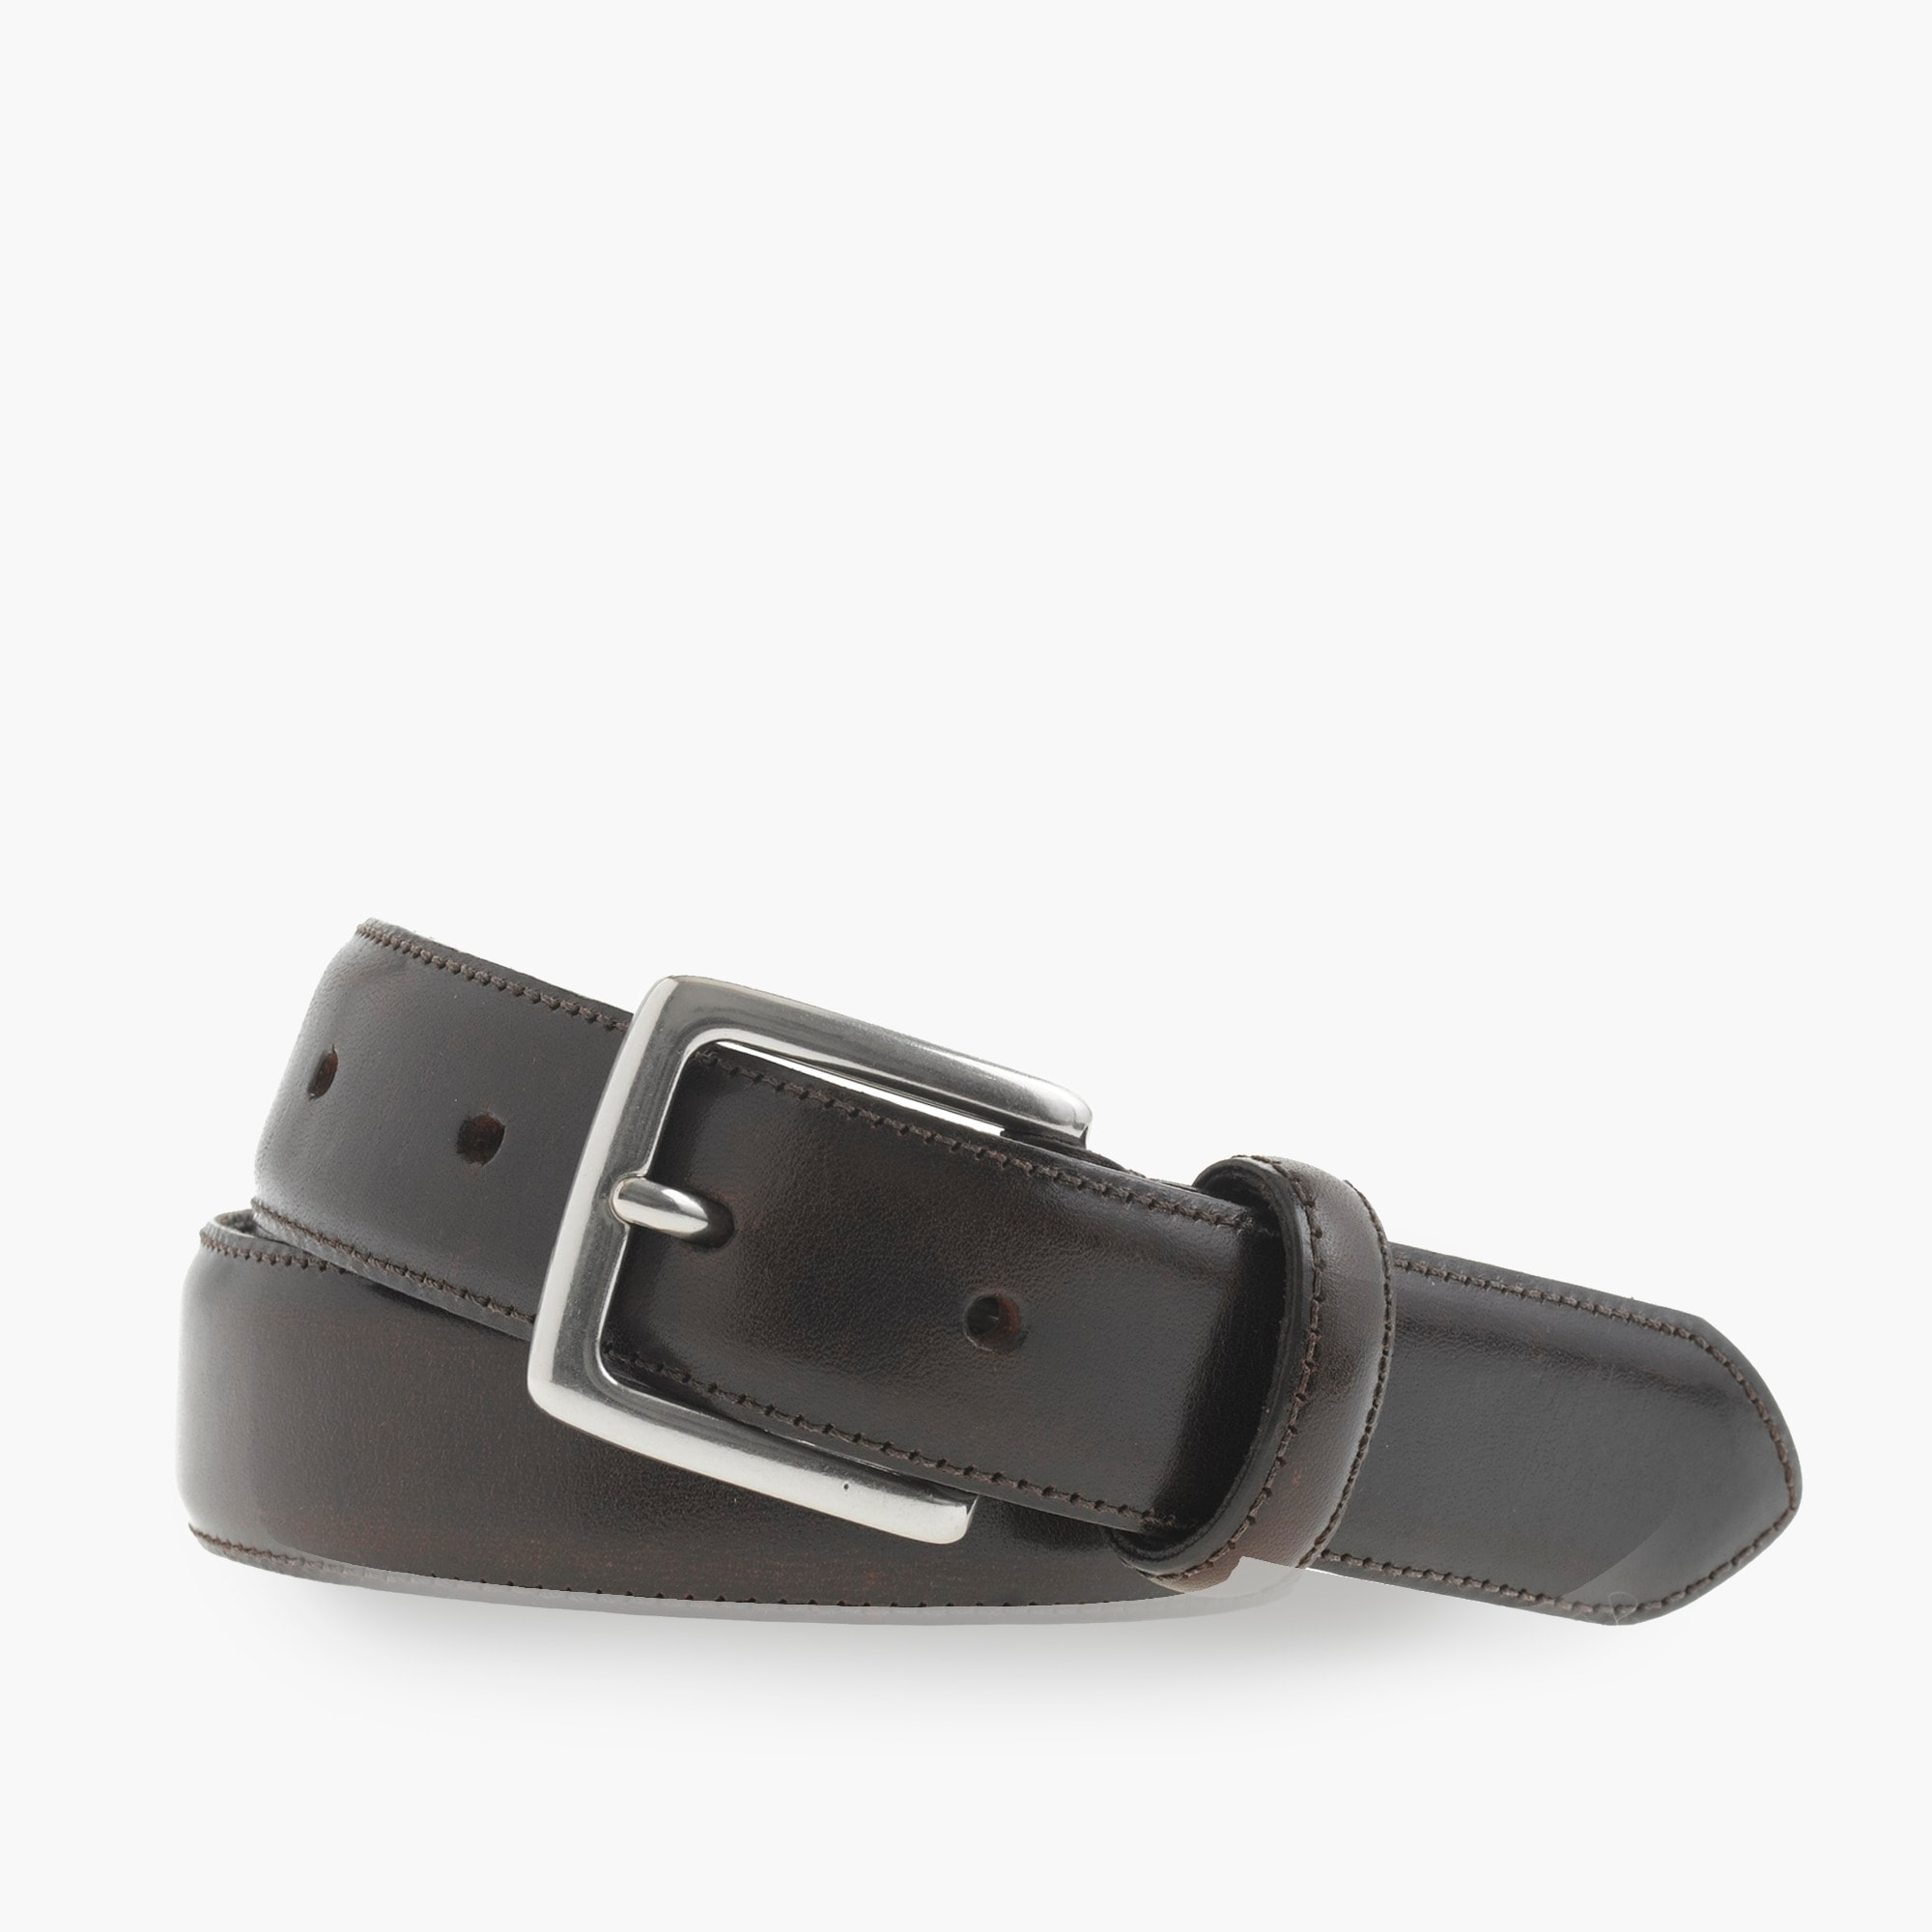 Stitched-edge belt men accessories c